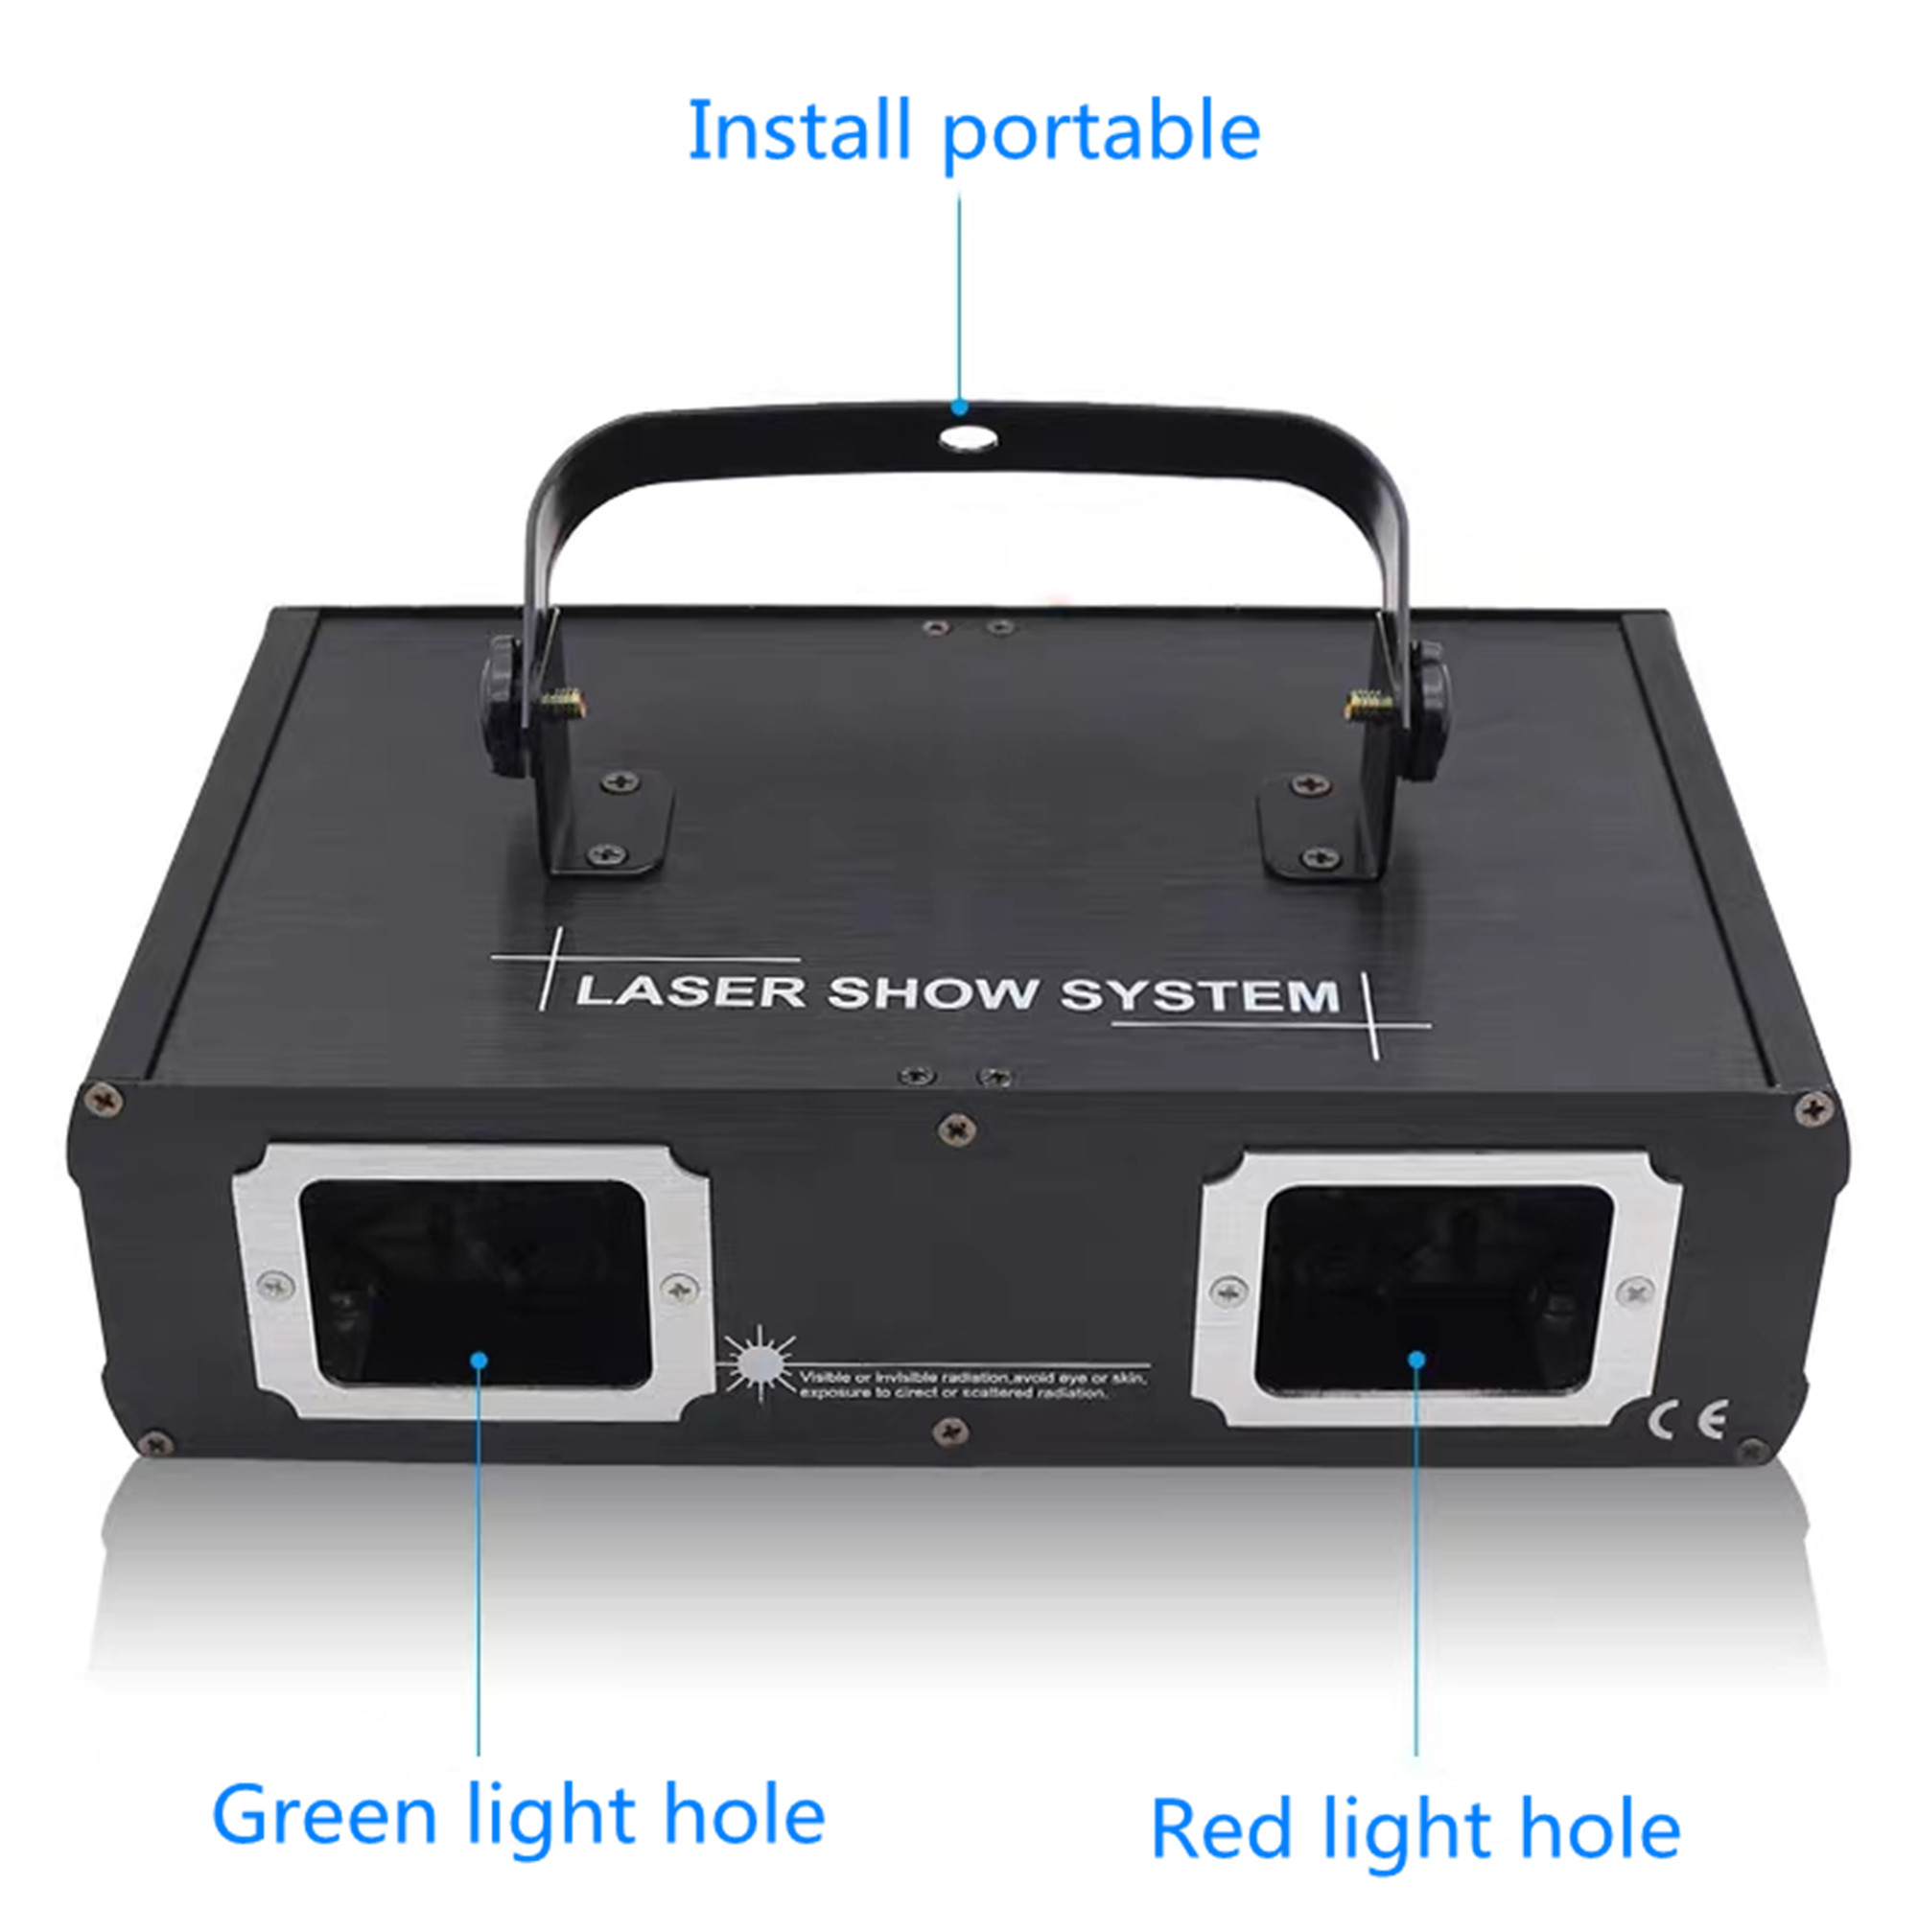 Heeb45d628d2c4cdeb4e5da43e93f19a0H - Hot sales 2 Lens Red Green Blue RGB Beam Laser Light DMX 512 Professional DJ Party Show Club Holiday Home Bar Stage Lighting